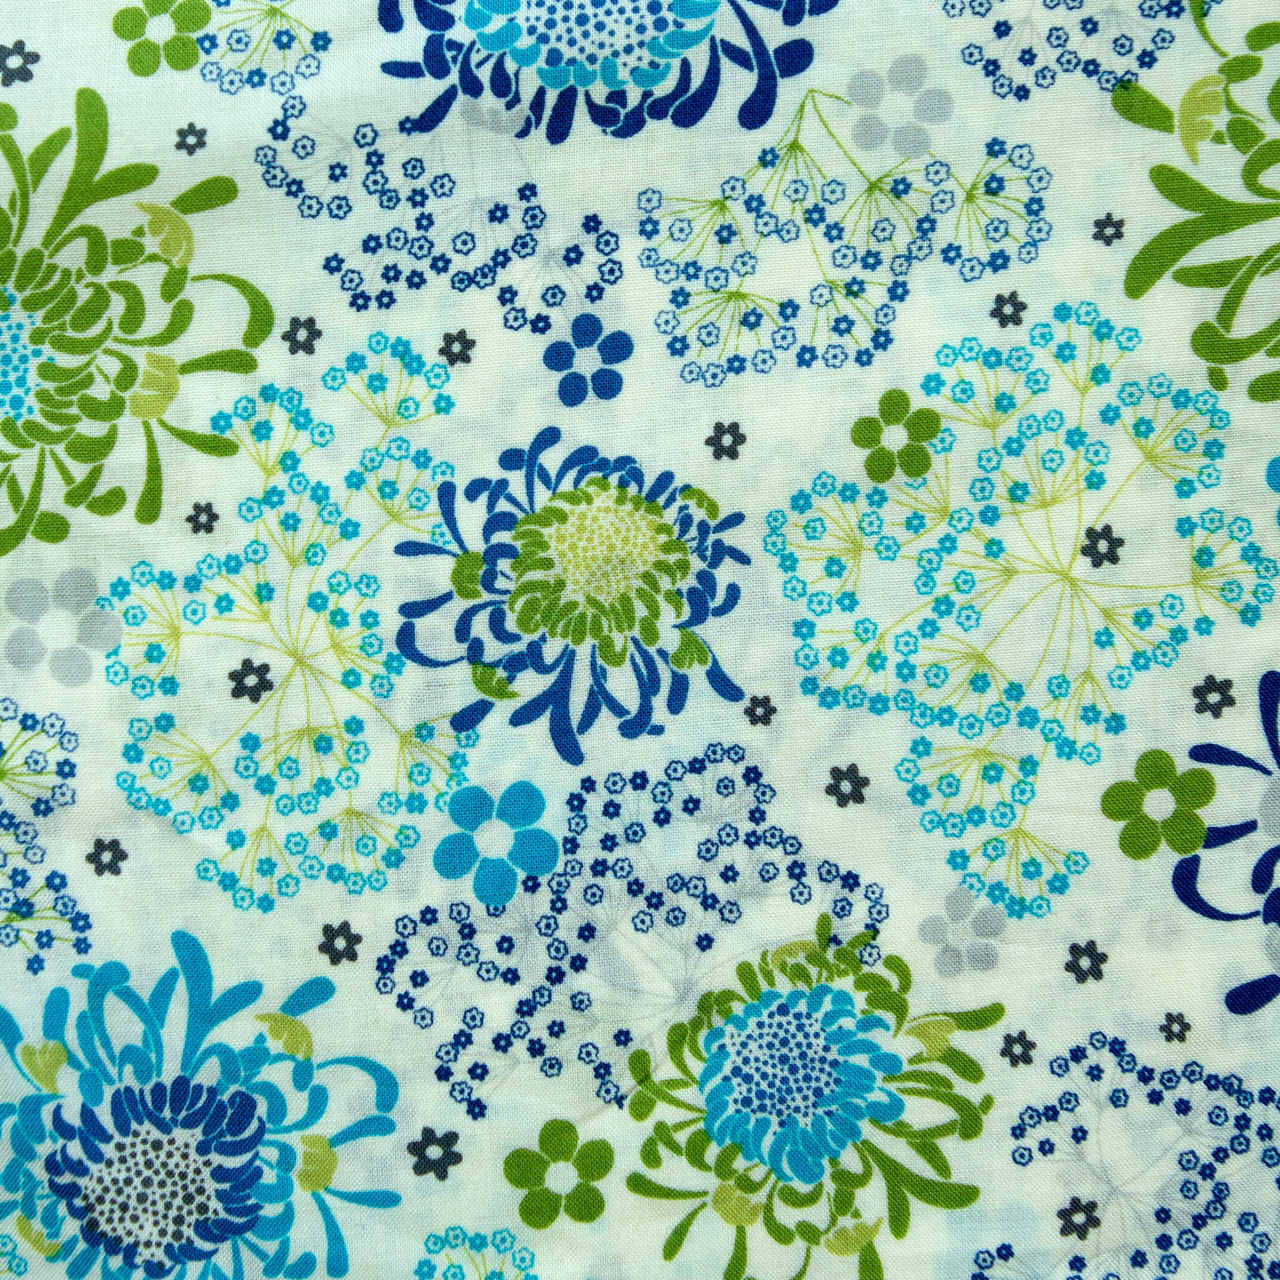 Tranquility print